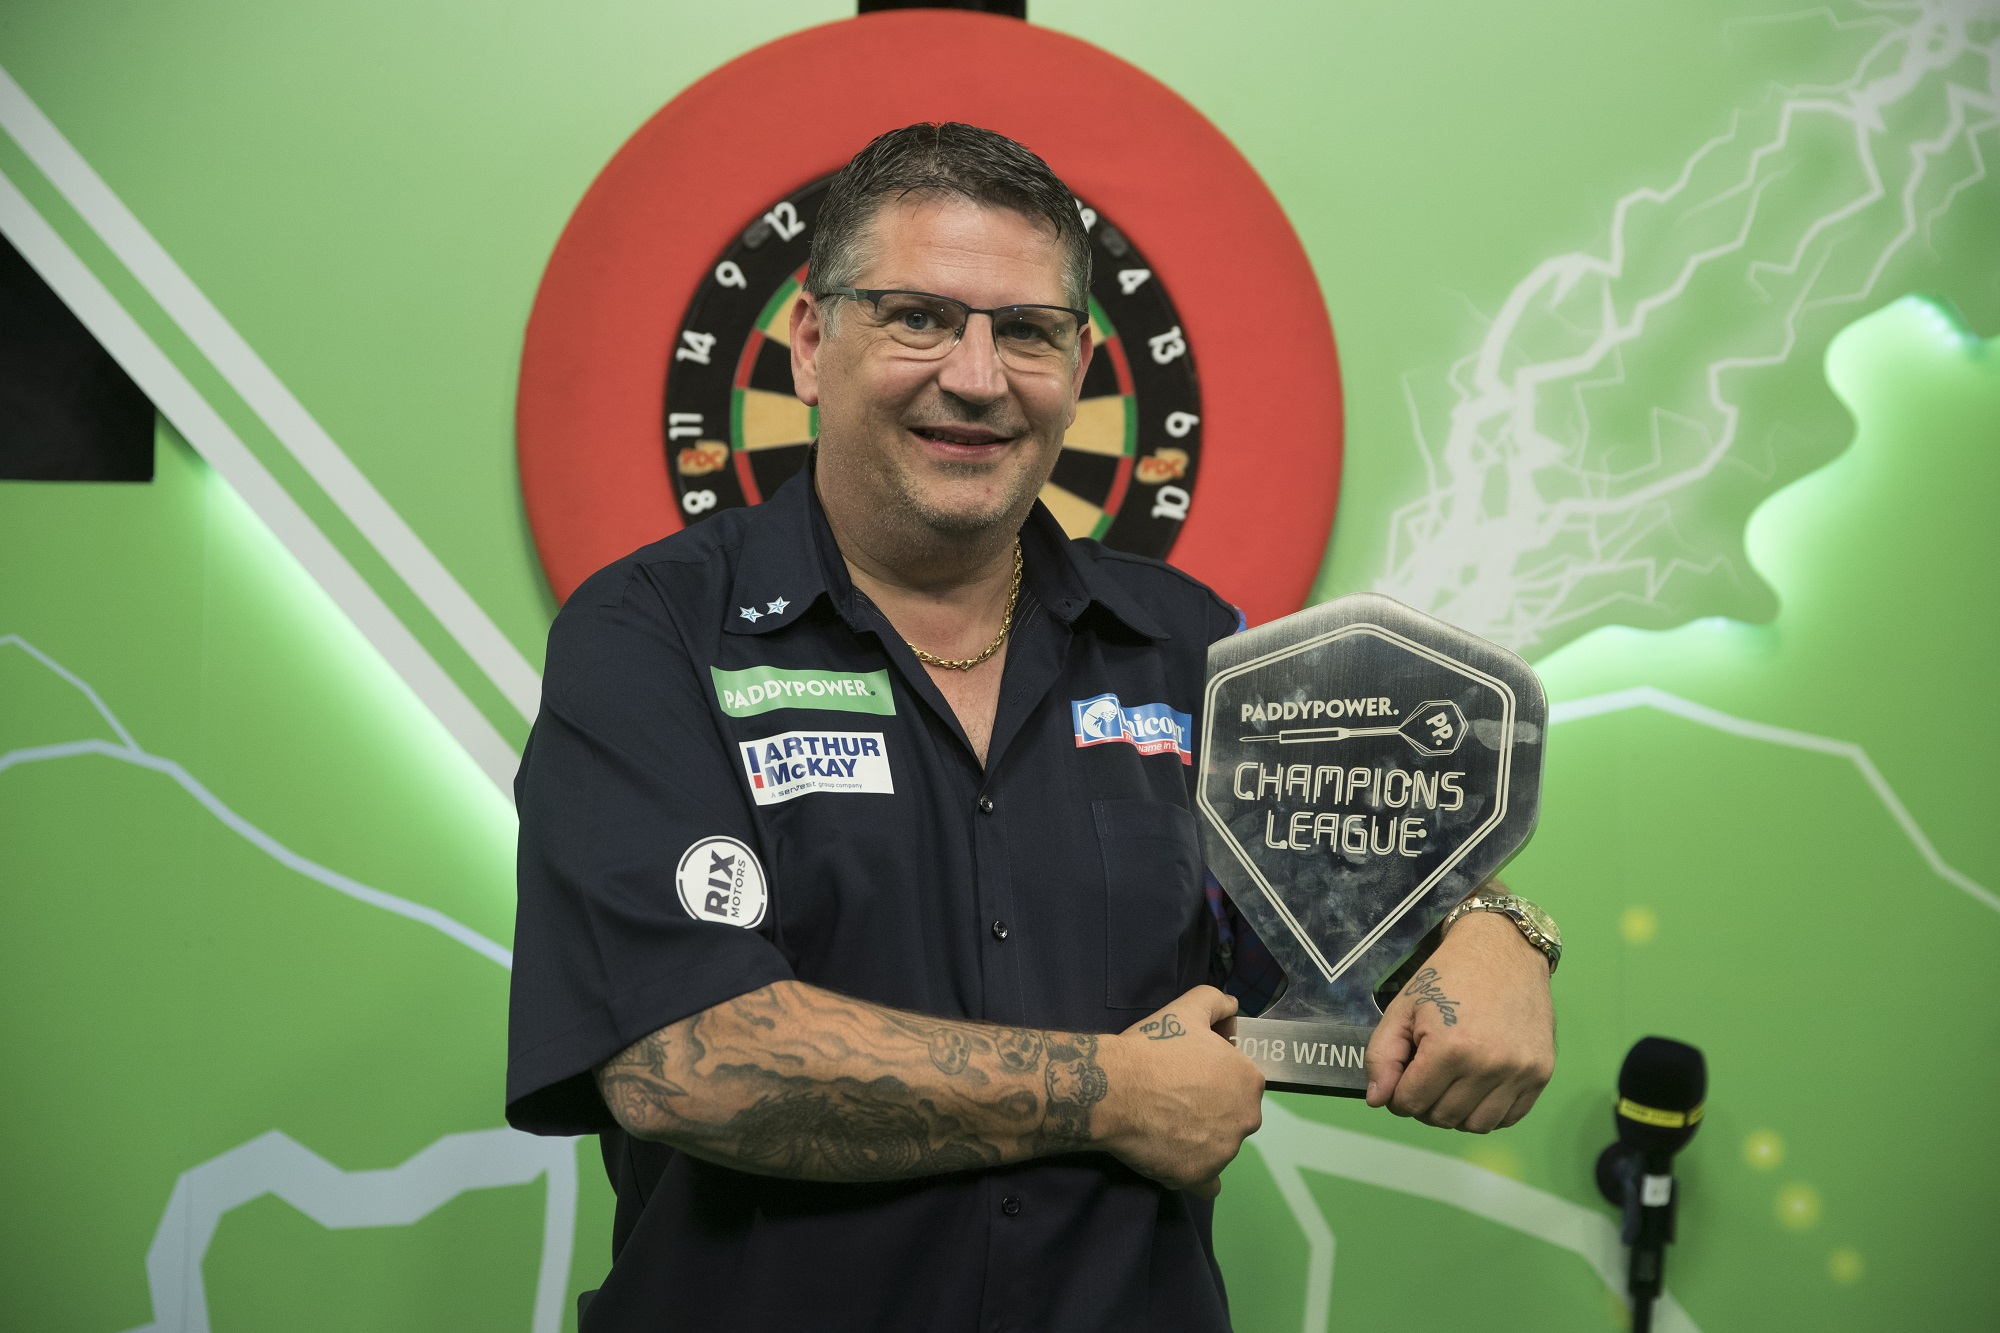 Paddy Power Champions League Schedule Confirmed Pdc